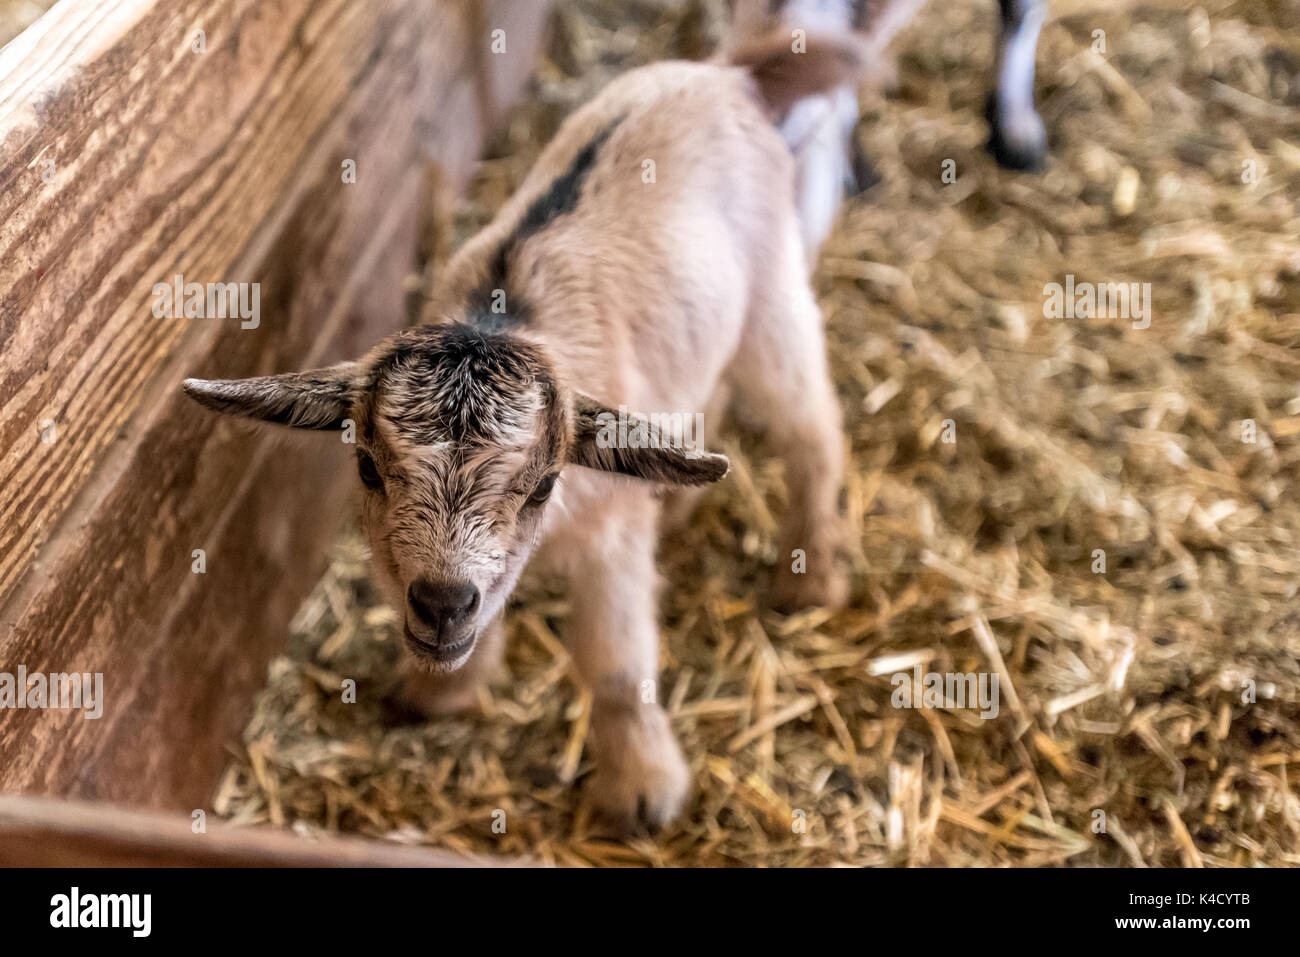 A newborn baby goat stands on wobbly legs, close up of cute farm animal in barn. - Stock Image